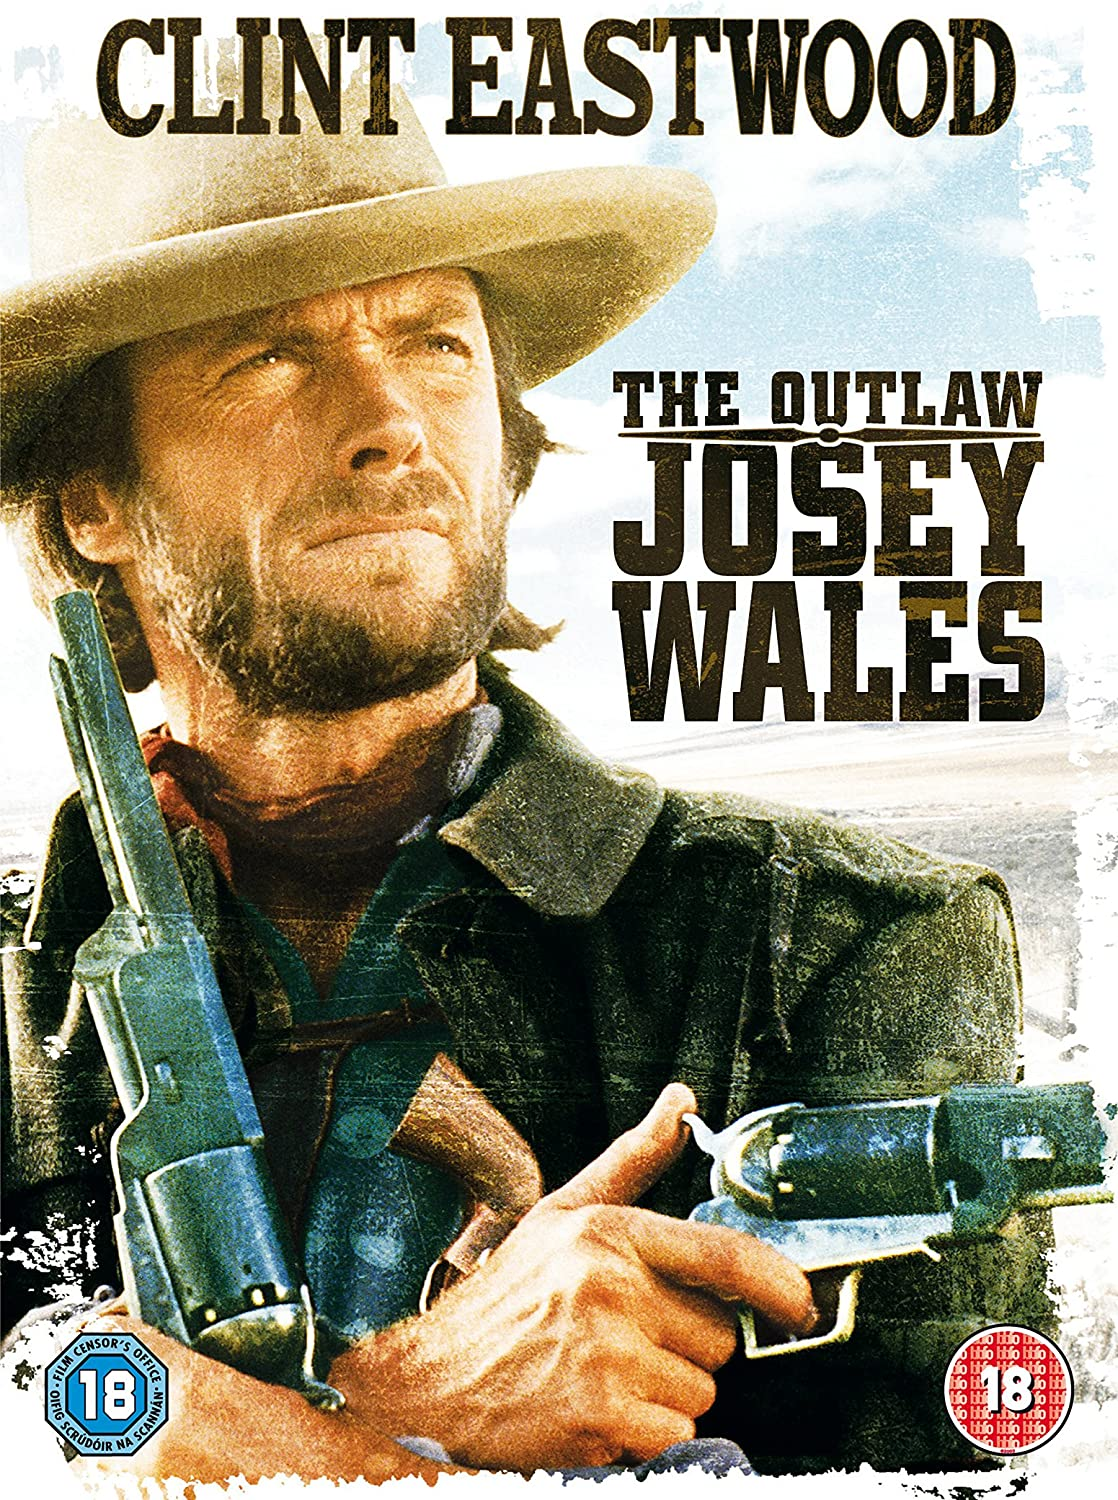 The Outlaw Josey Wales [Import anglais]: Amazon.fr: Clint Eastwood, Sondra  Locke, Chief Dan George, Bill McKinney, John Vernon, Paula Trueman, Sam  Bottoms, Geraldine Keams, Woodrow Parfrey, Joyce Jameson, Sheb Wooley,  Royal Dano,